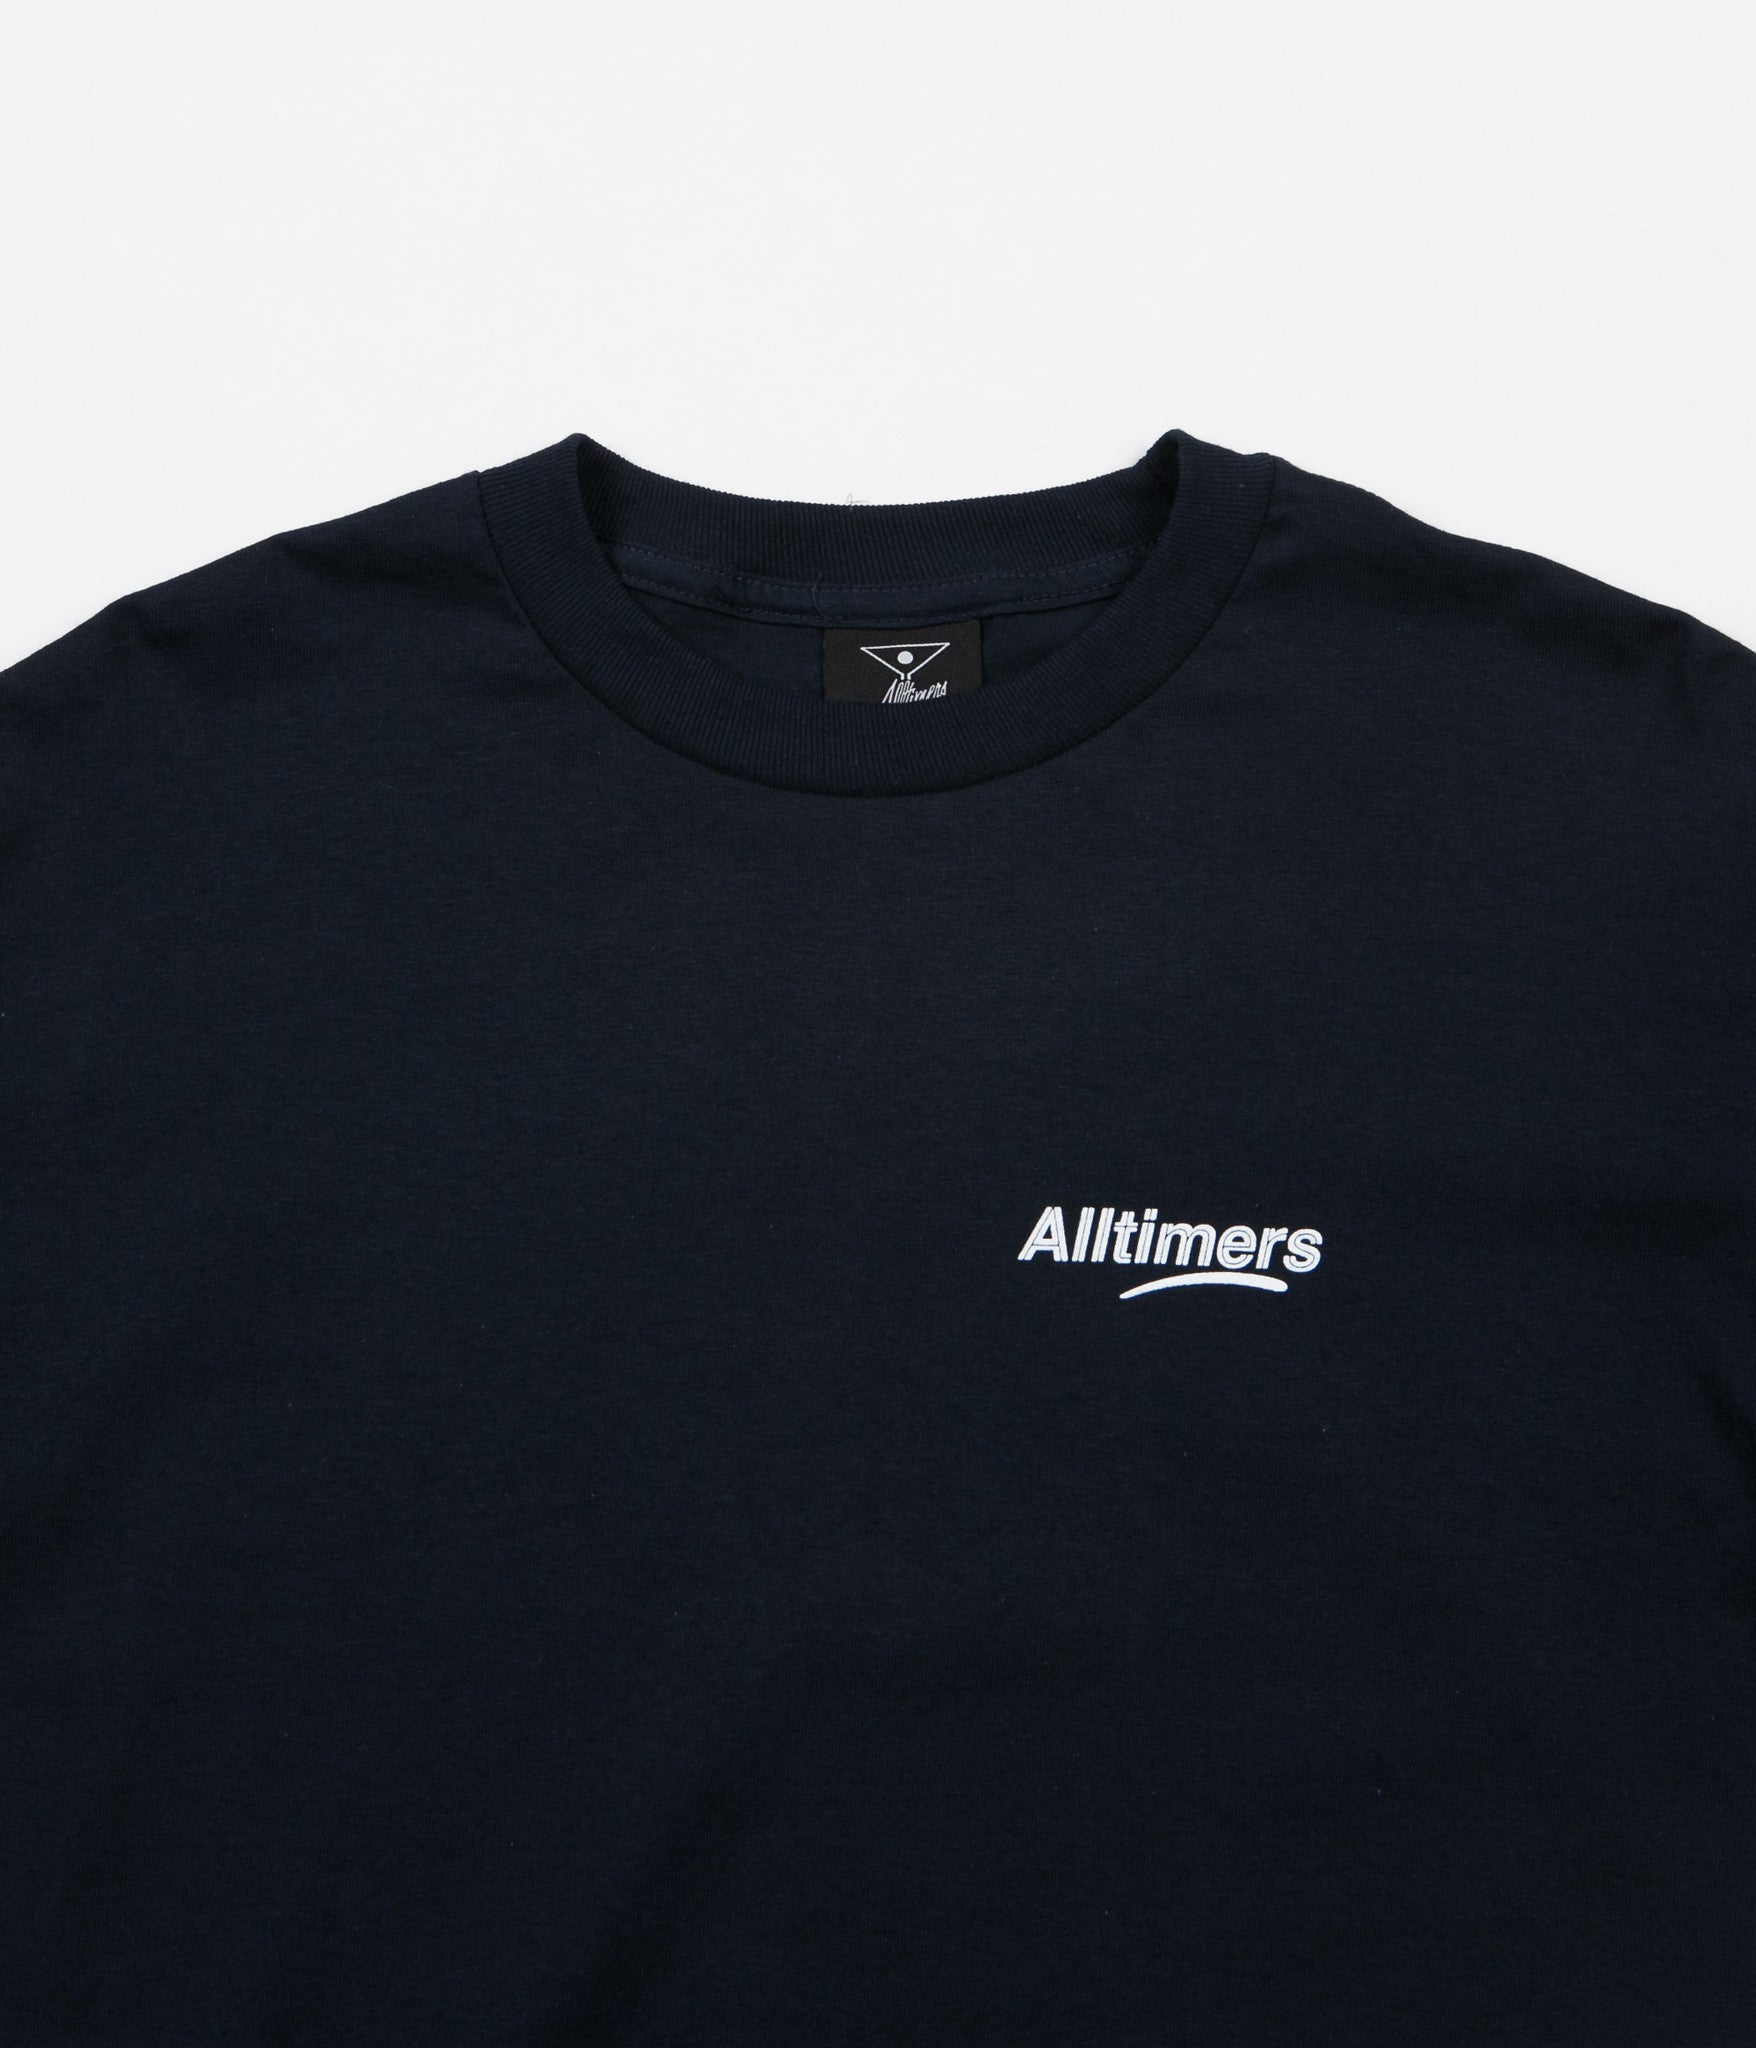 Alltimers Peachy Long Sleeve T-Shirt - Blue